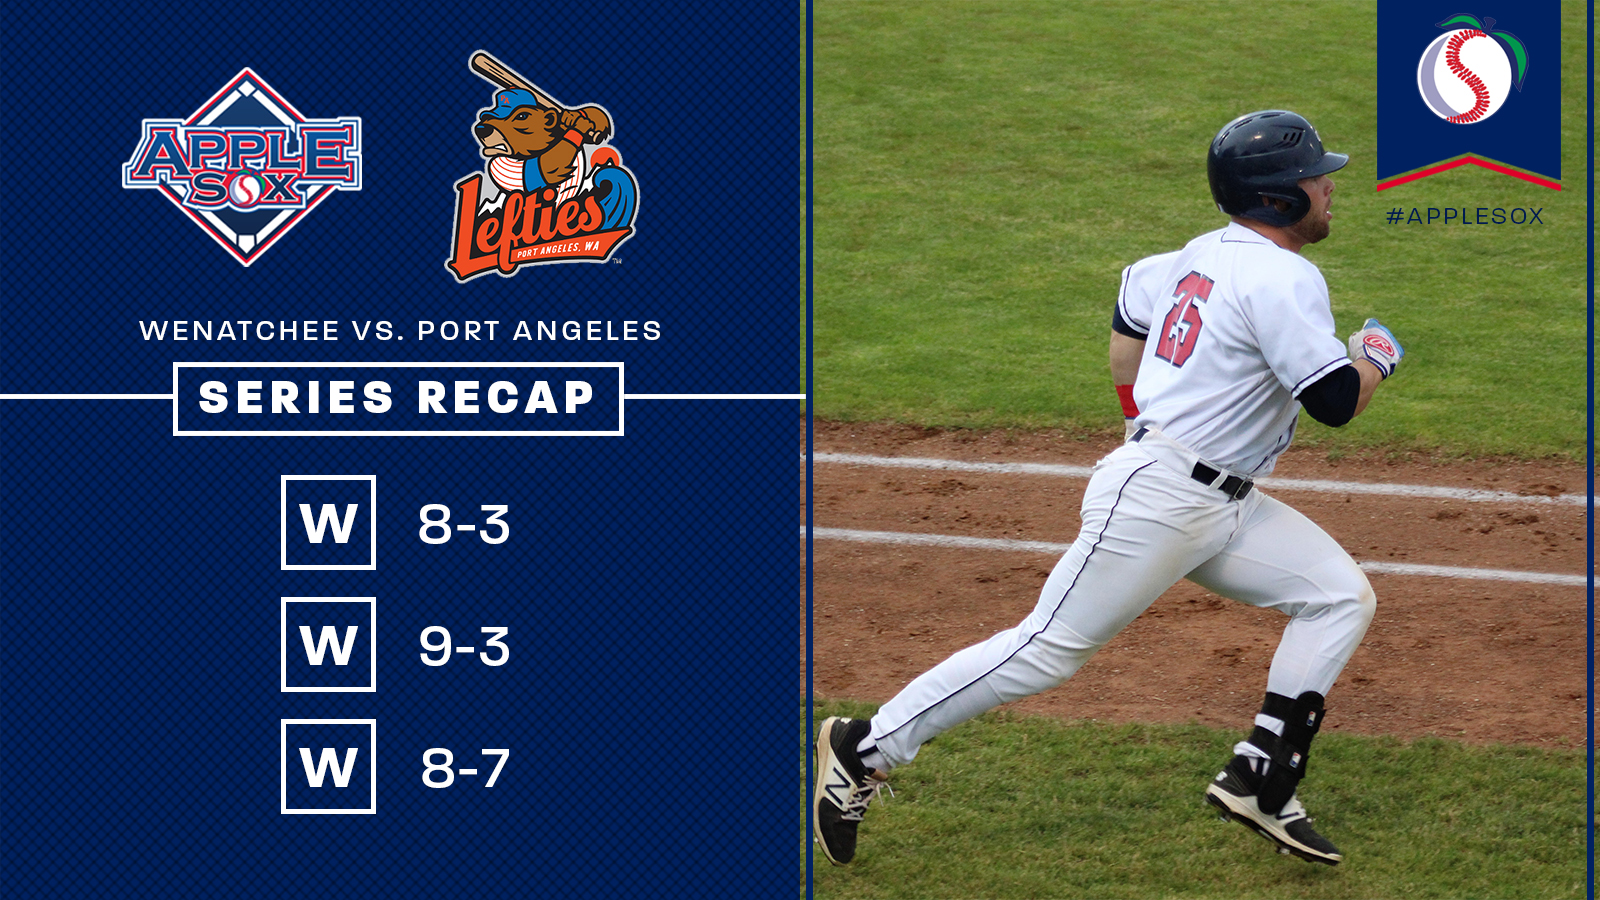 The AppleSox swept their first series since July 2-4, 2015, Thursday night at Paul Thomas Sr. Stadium. Evan Johnson drove in 8 of the team's 25 runs in the series.